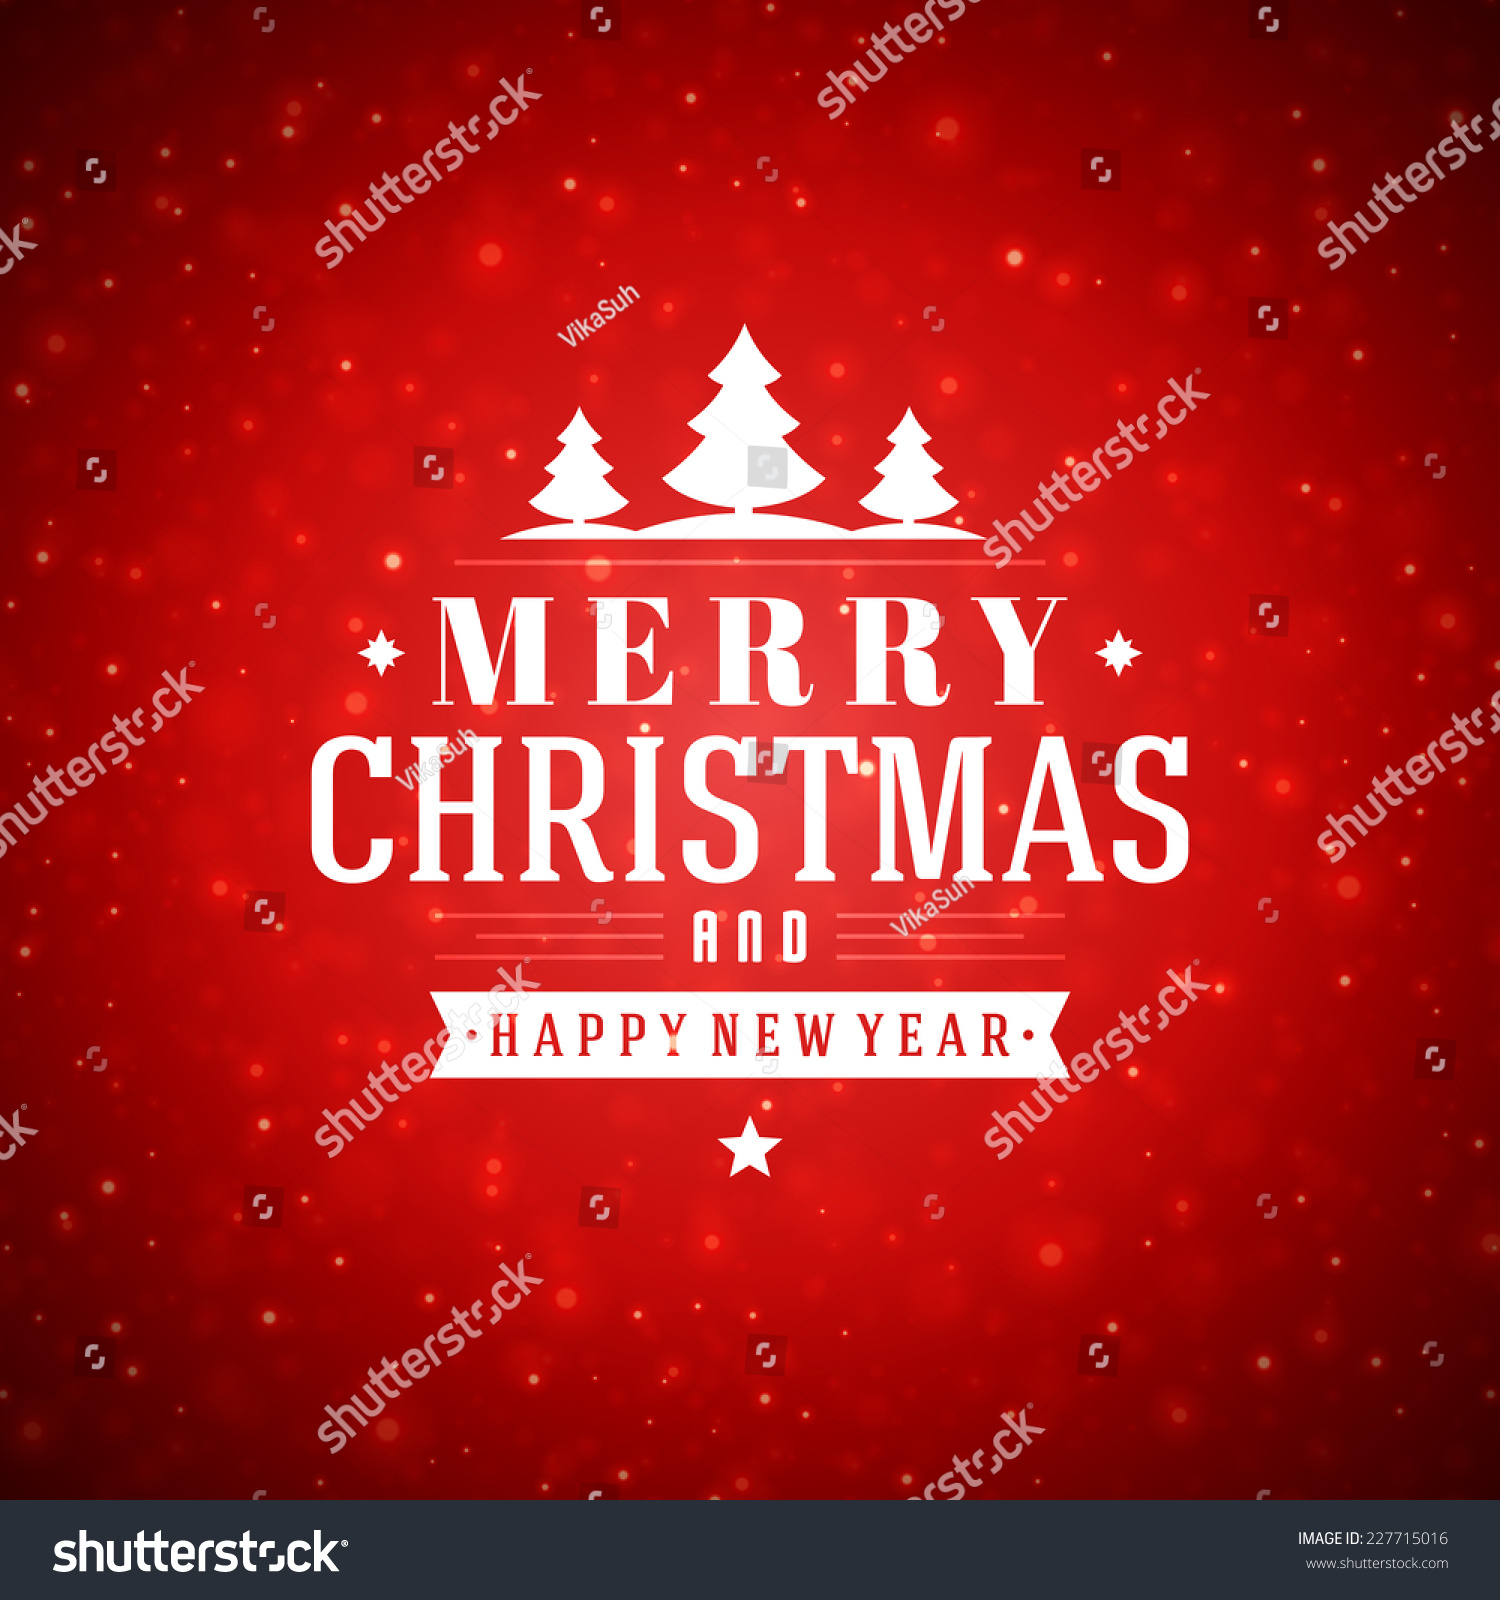 Christmas Red Light Vector Background Merry Stock Vector